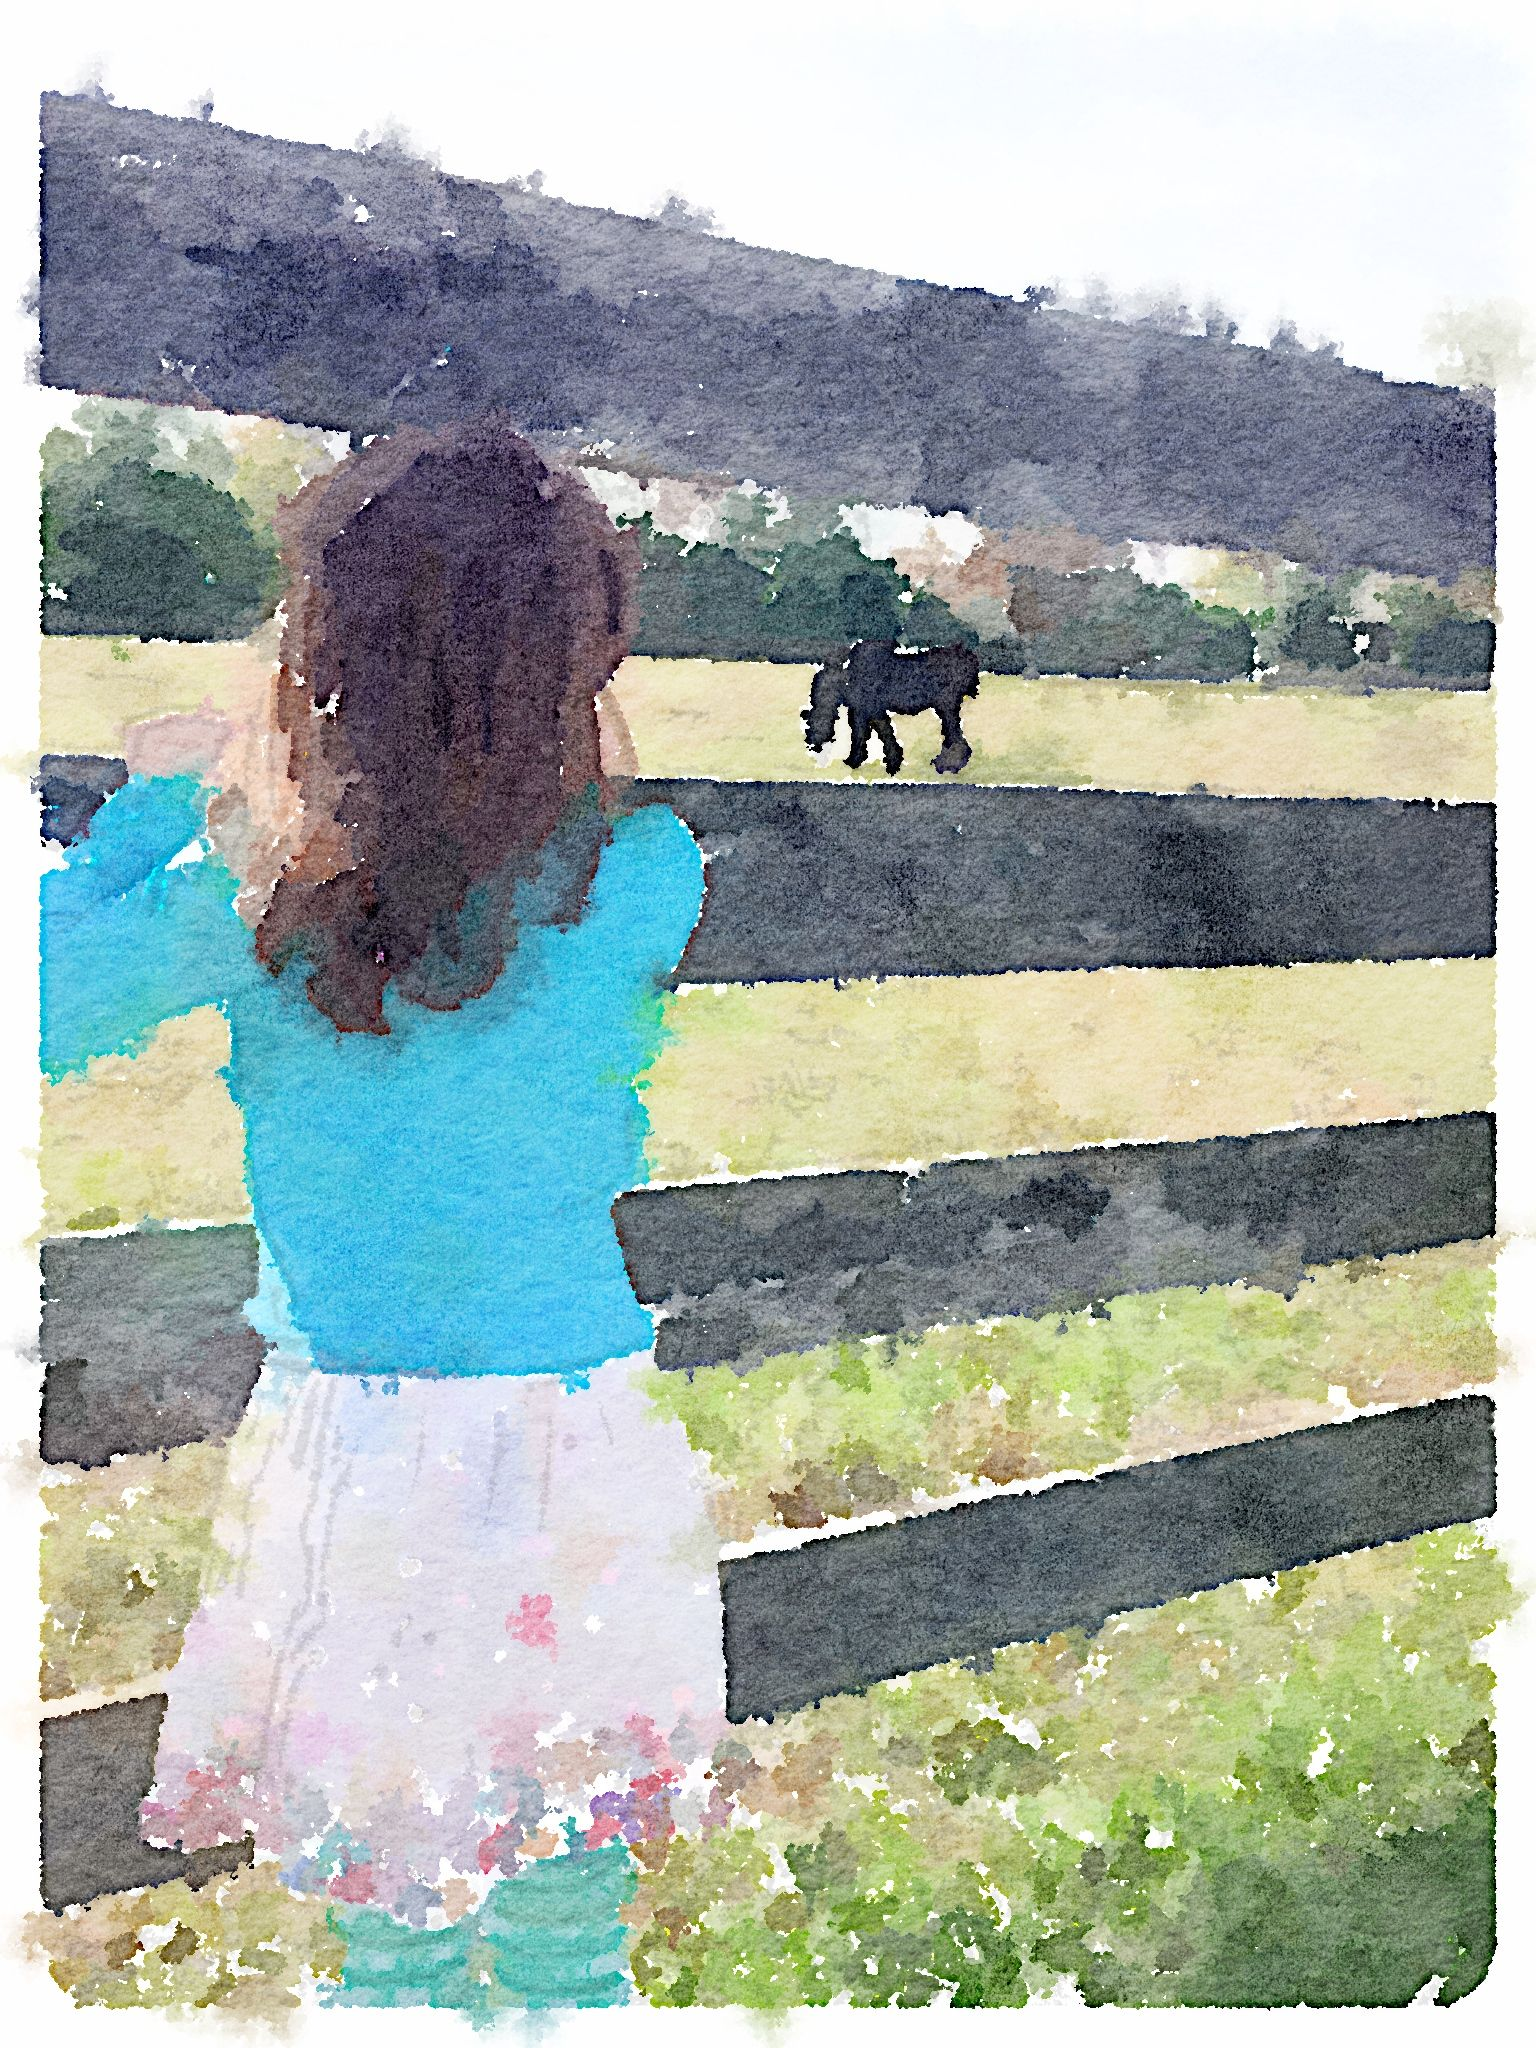 I Used The Waterlogue App To Convert A Photo To This Watercolor